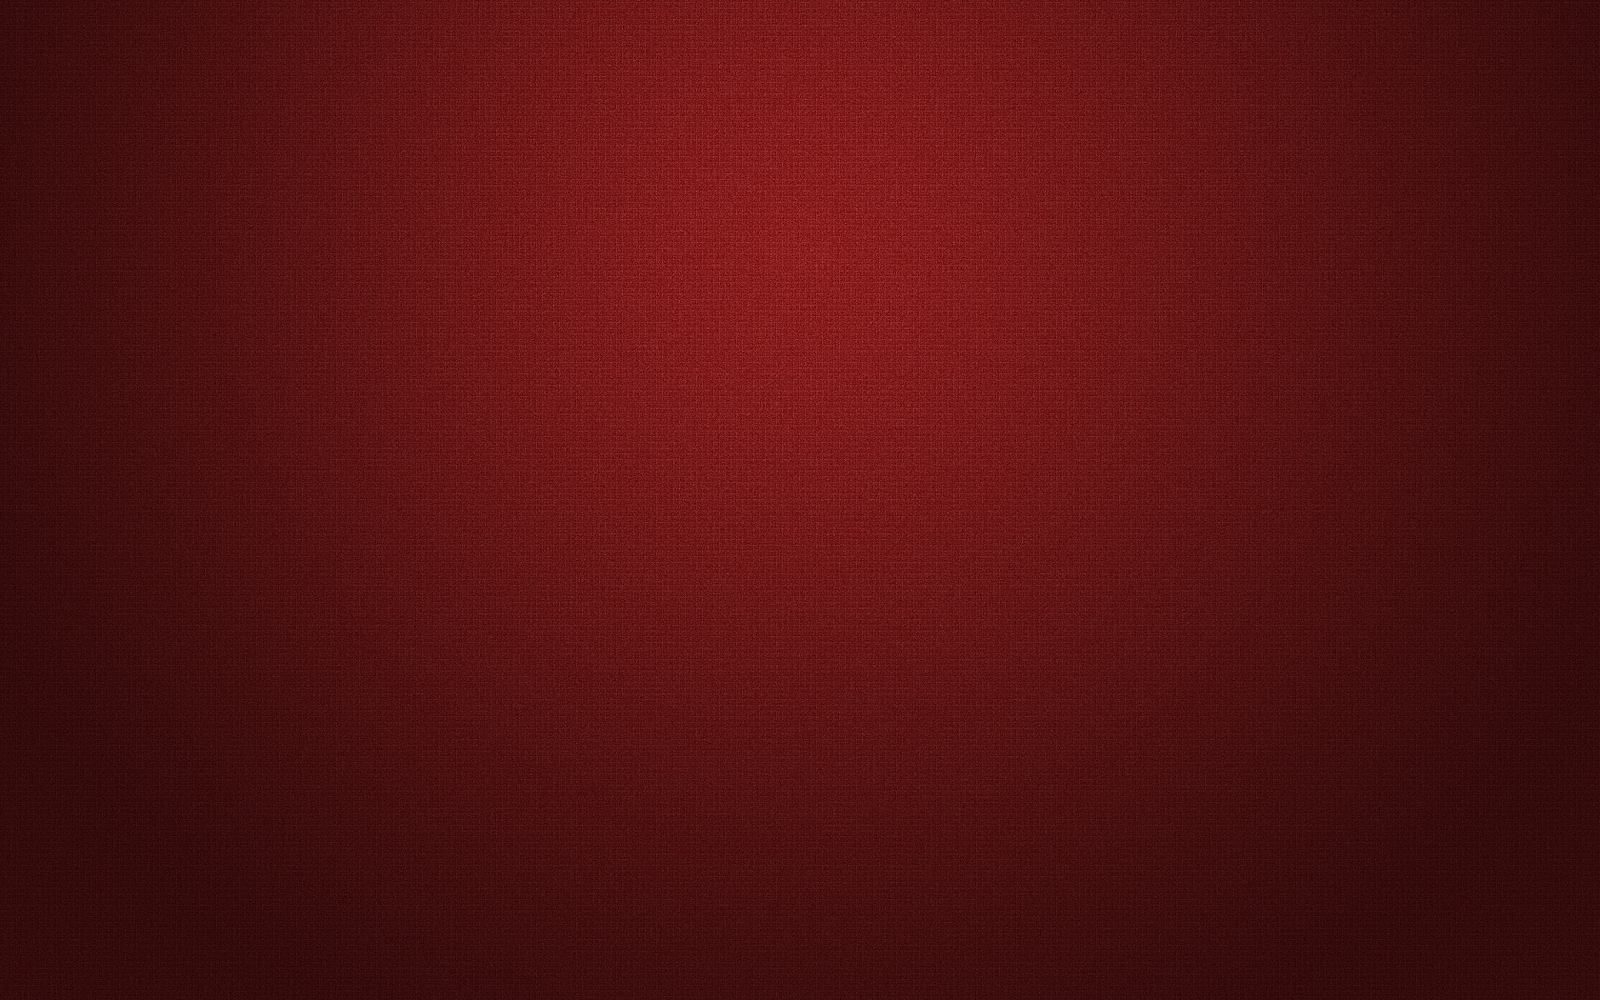 the-best-top-desktop-red-wallpapers-red-wallpaper-red-background-hd